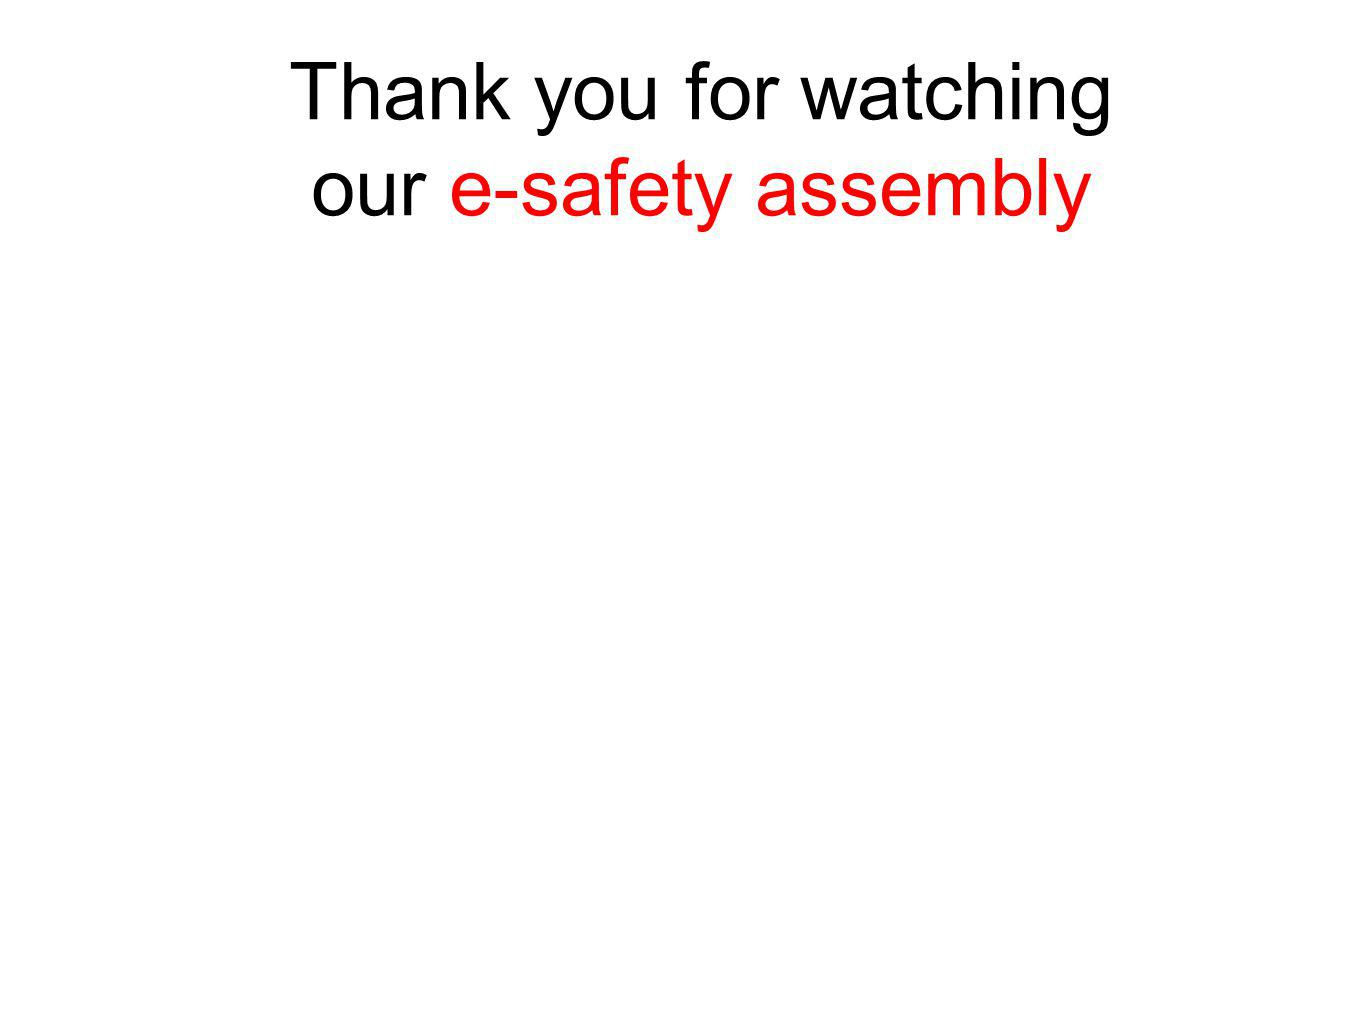 Thank you for watching our e-safety assembly